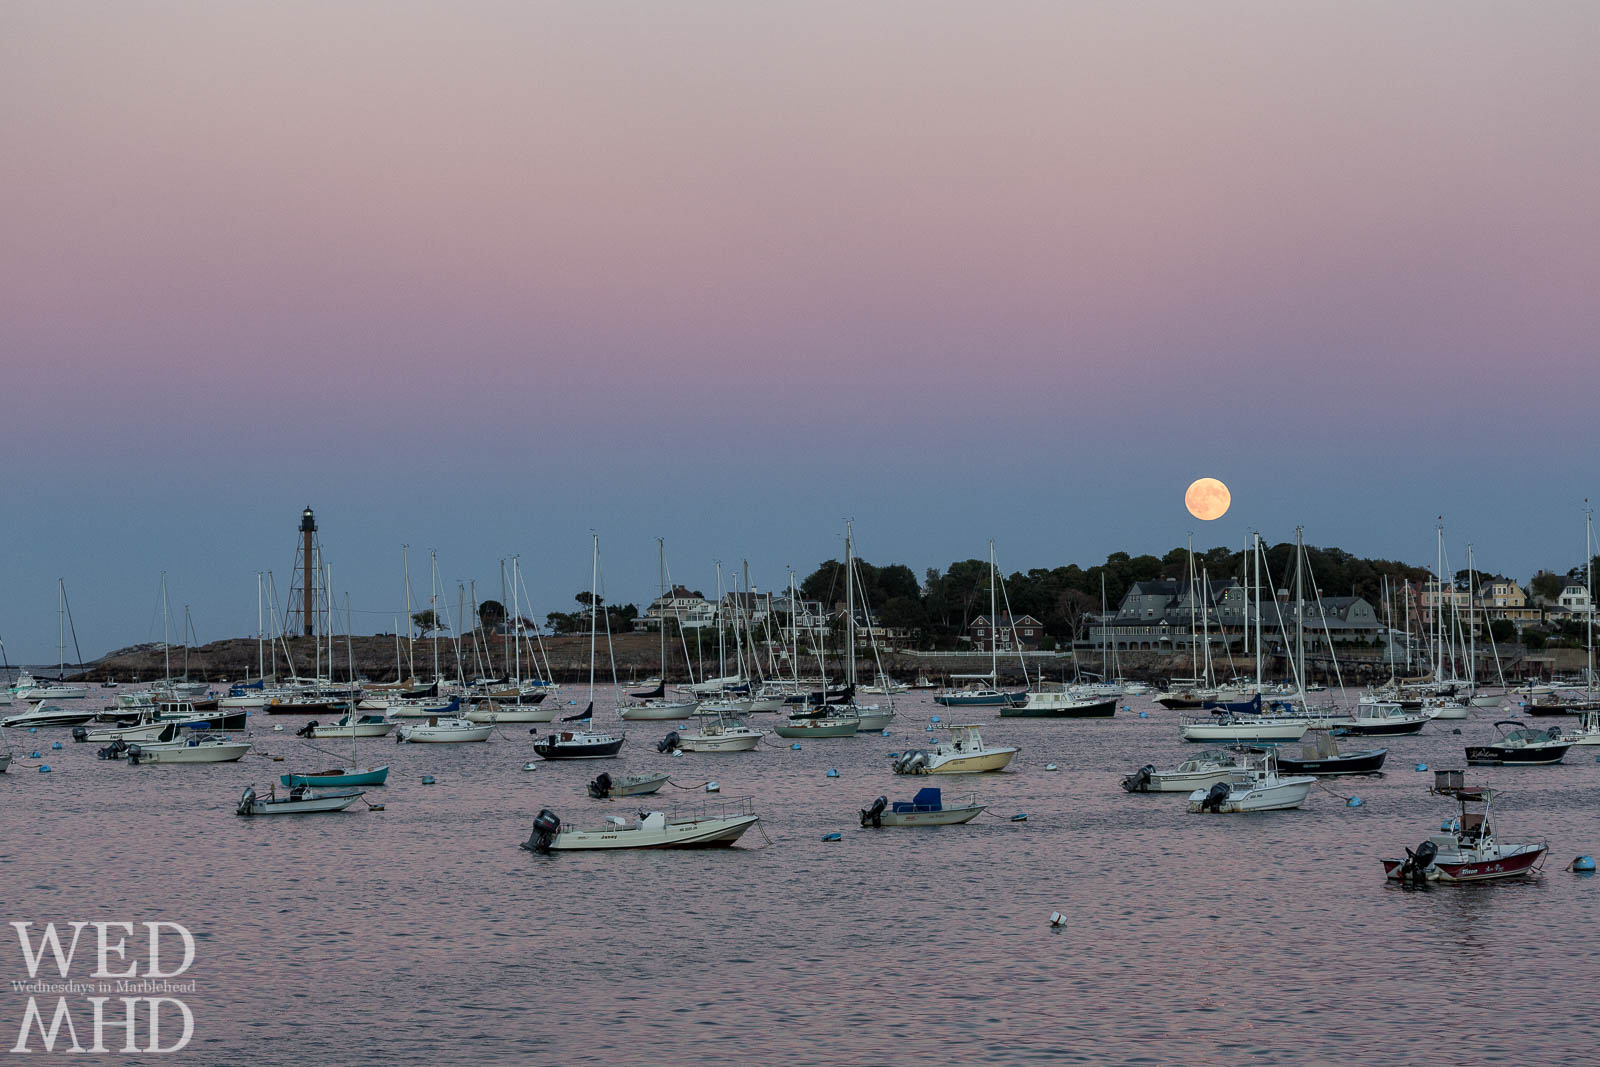 The full harvest moon is captured on a late September evening over Marblehead Neck appearing as a Corinthian moonrise with the yacht club just under the glowing light